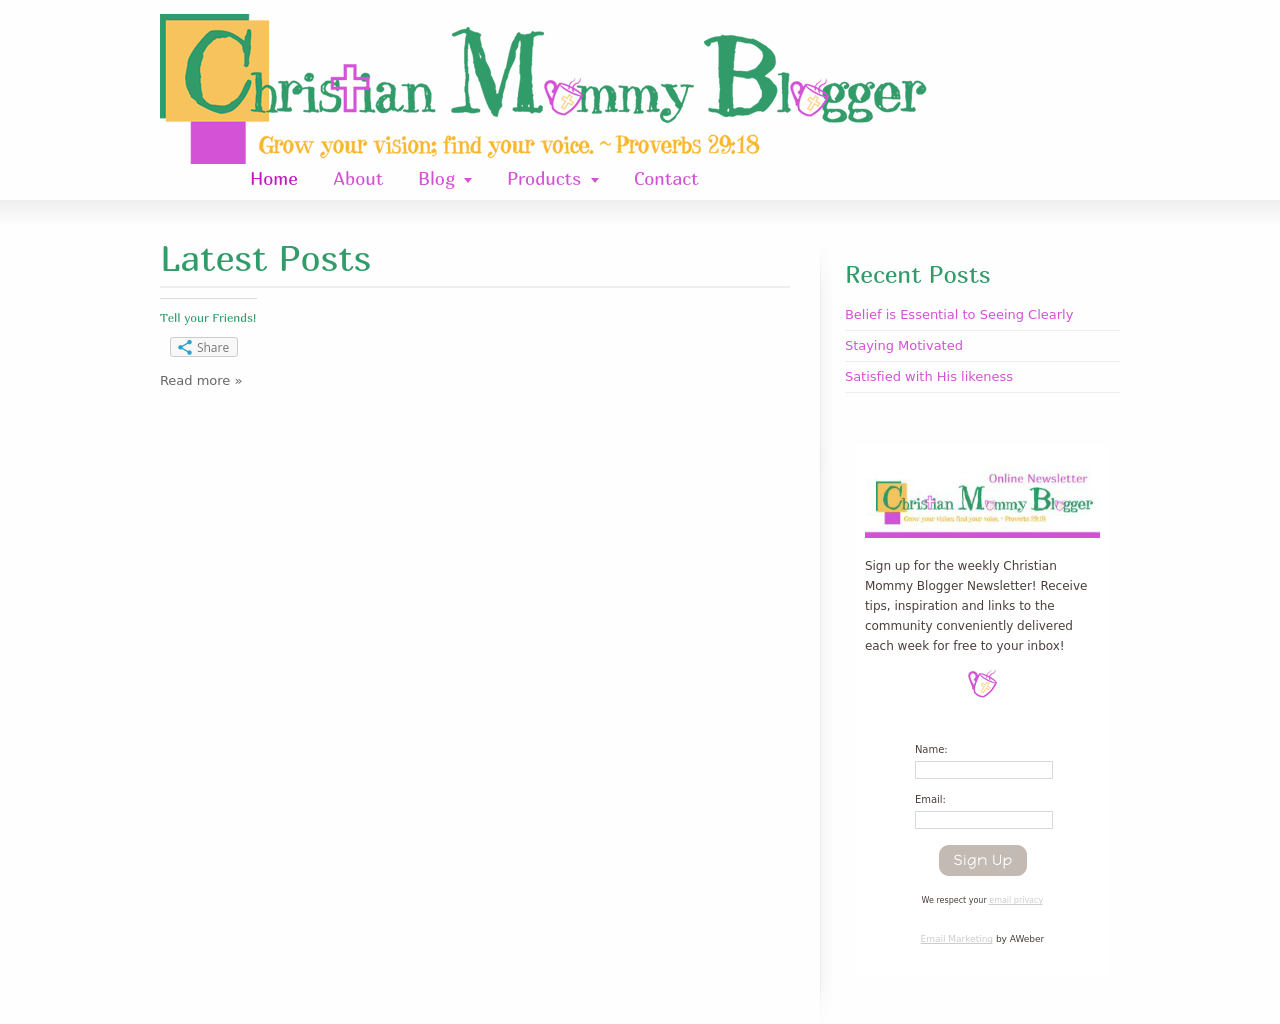 Christian-Mommy-Blogger-Advertising-Reviews-Pricing